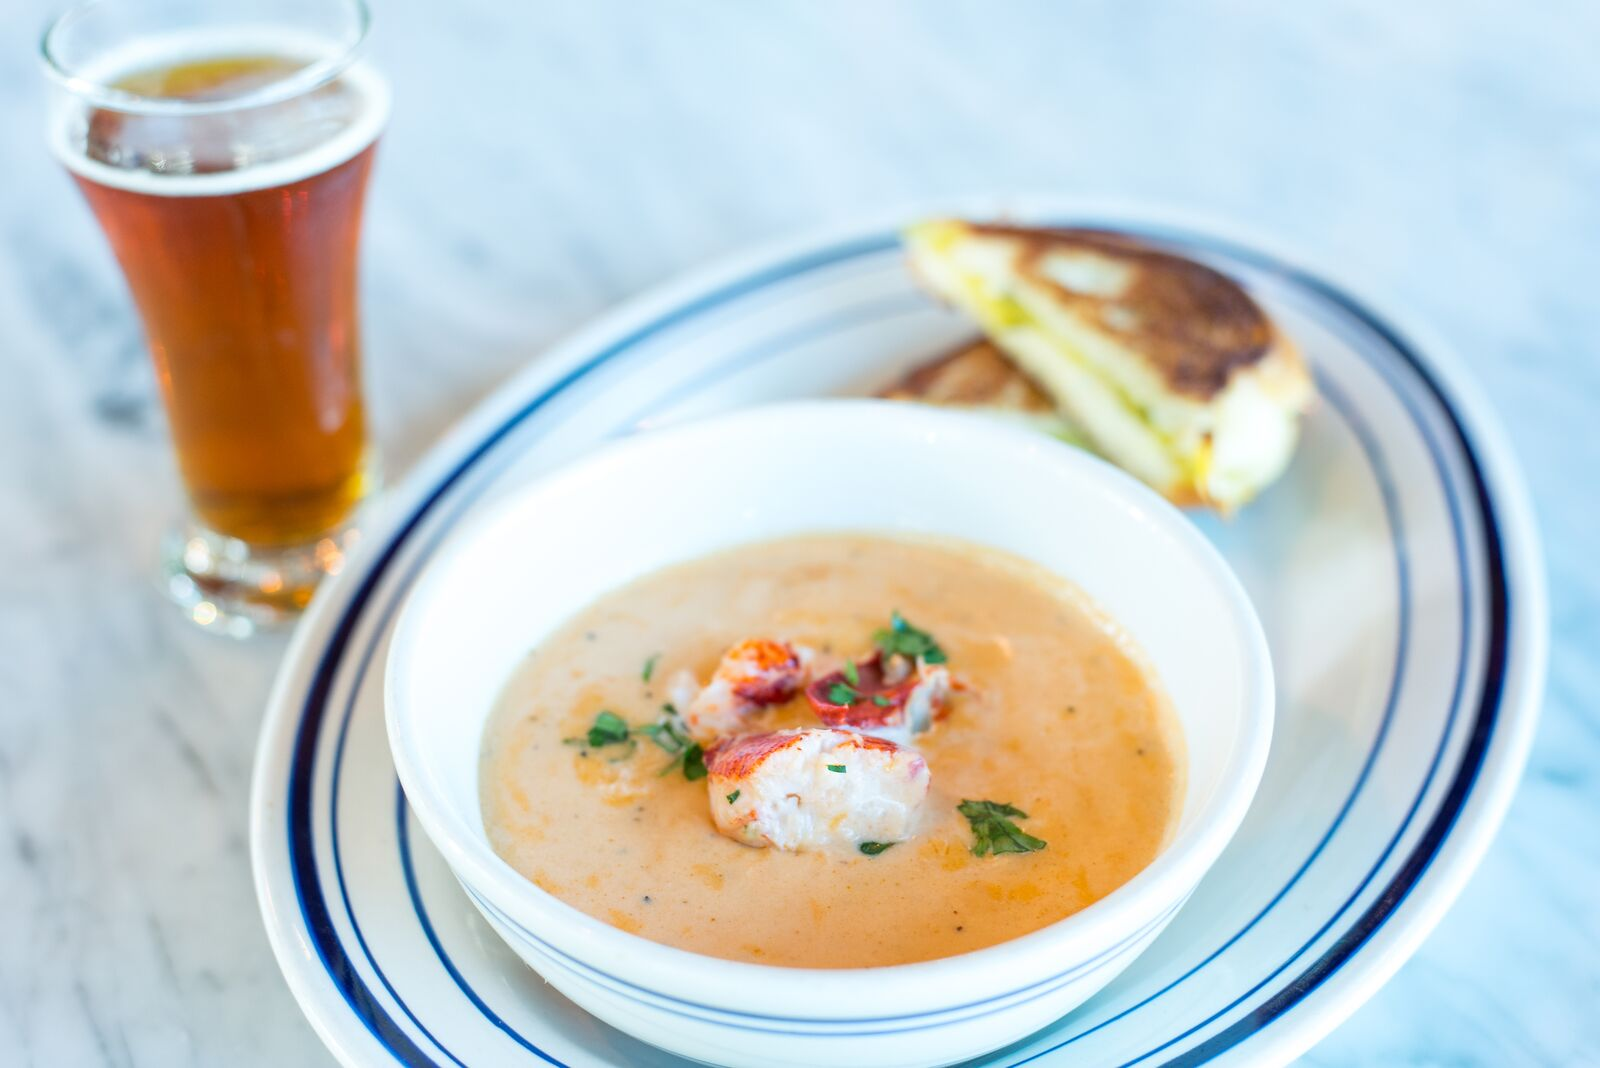 Photo of a bowl of lobster bisque, on a plate with a mini grilled cheese sandwich/